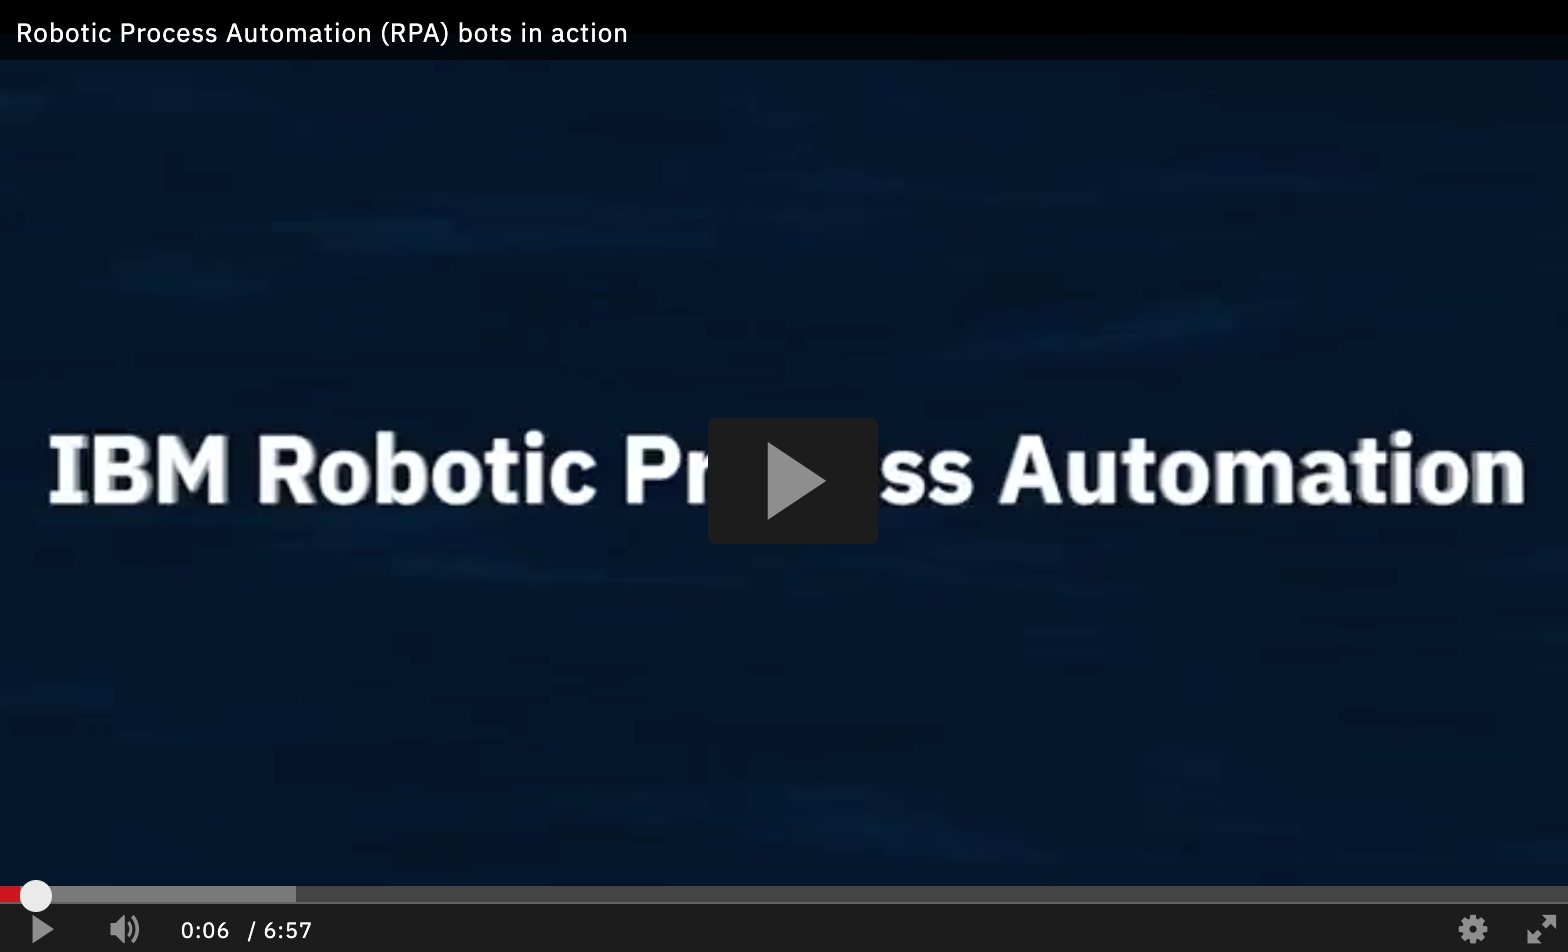 Robotic Process Automation (RPA) bots in action